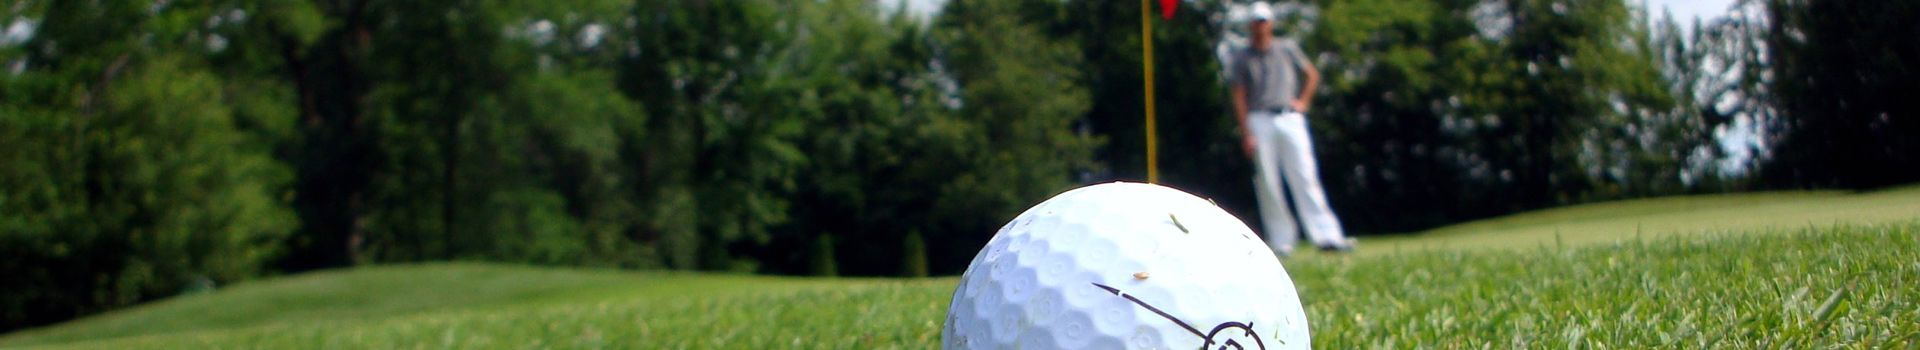 BCgolfguide.com Golf Travel Services